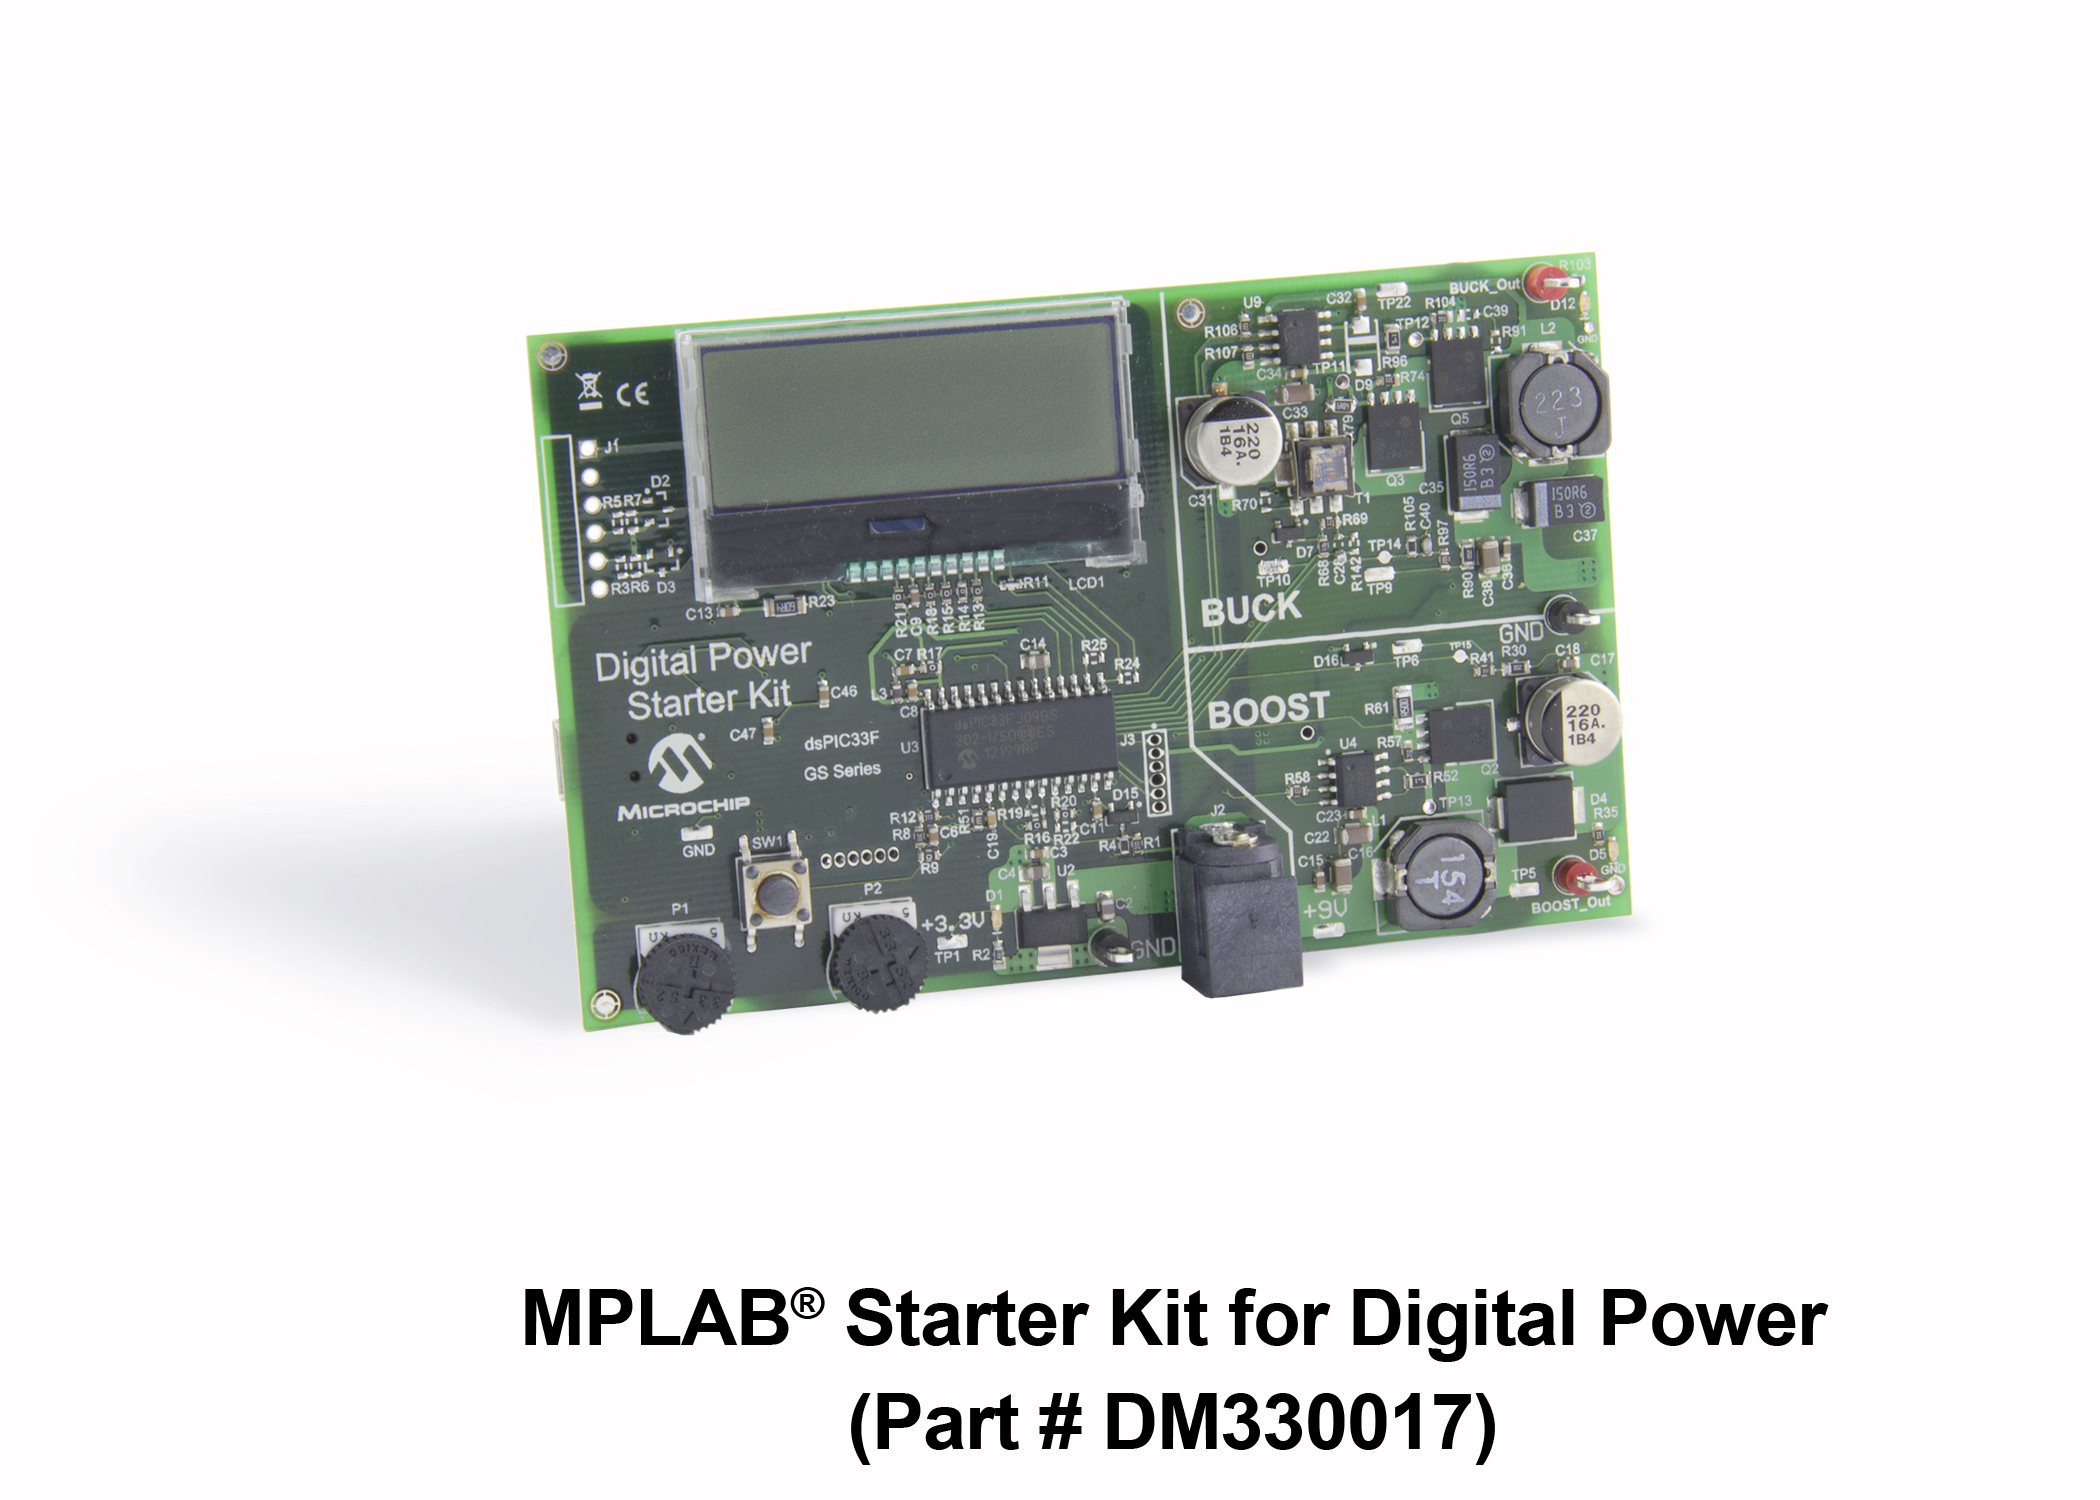 Development Tools Circuitlab Stk Dual Rail Power Supply The Mplab Starter Kit For Digital Allows User To Easily Explore Capabilities And Features Of Dspic33f Gs Conversion Family